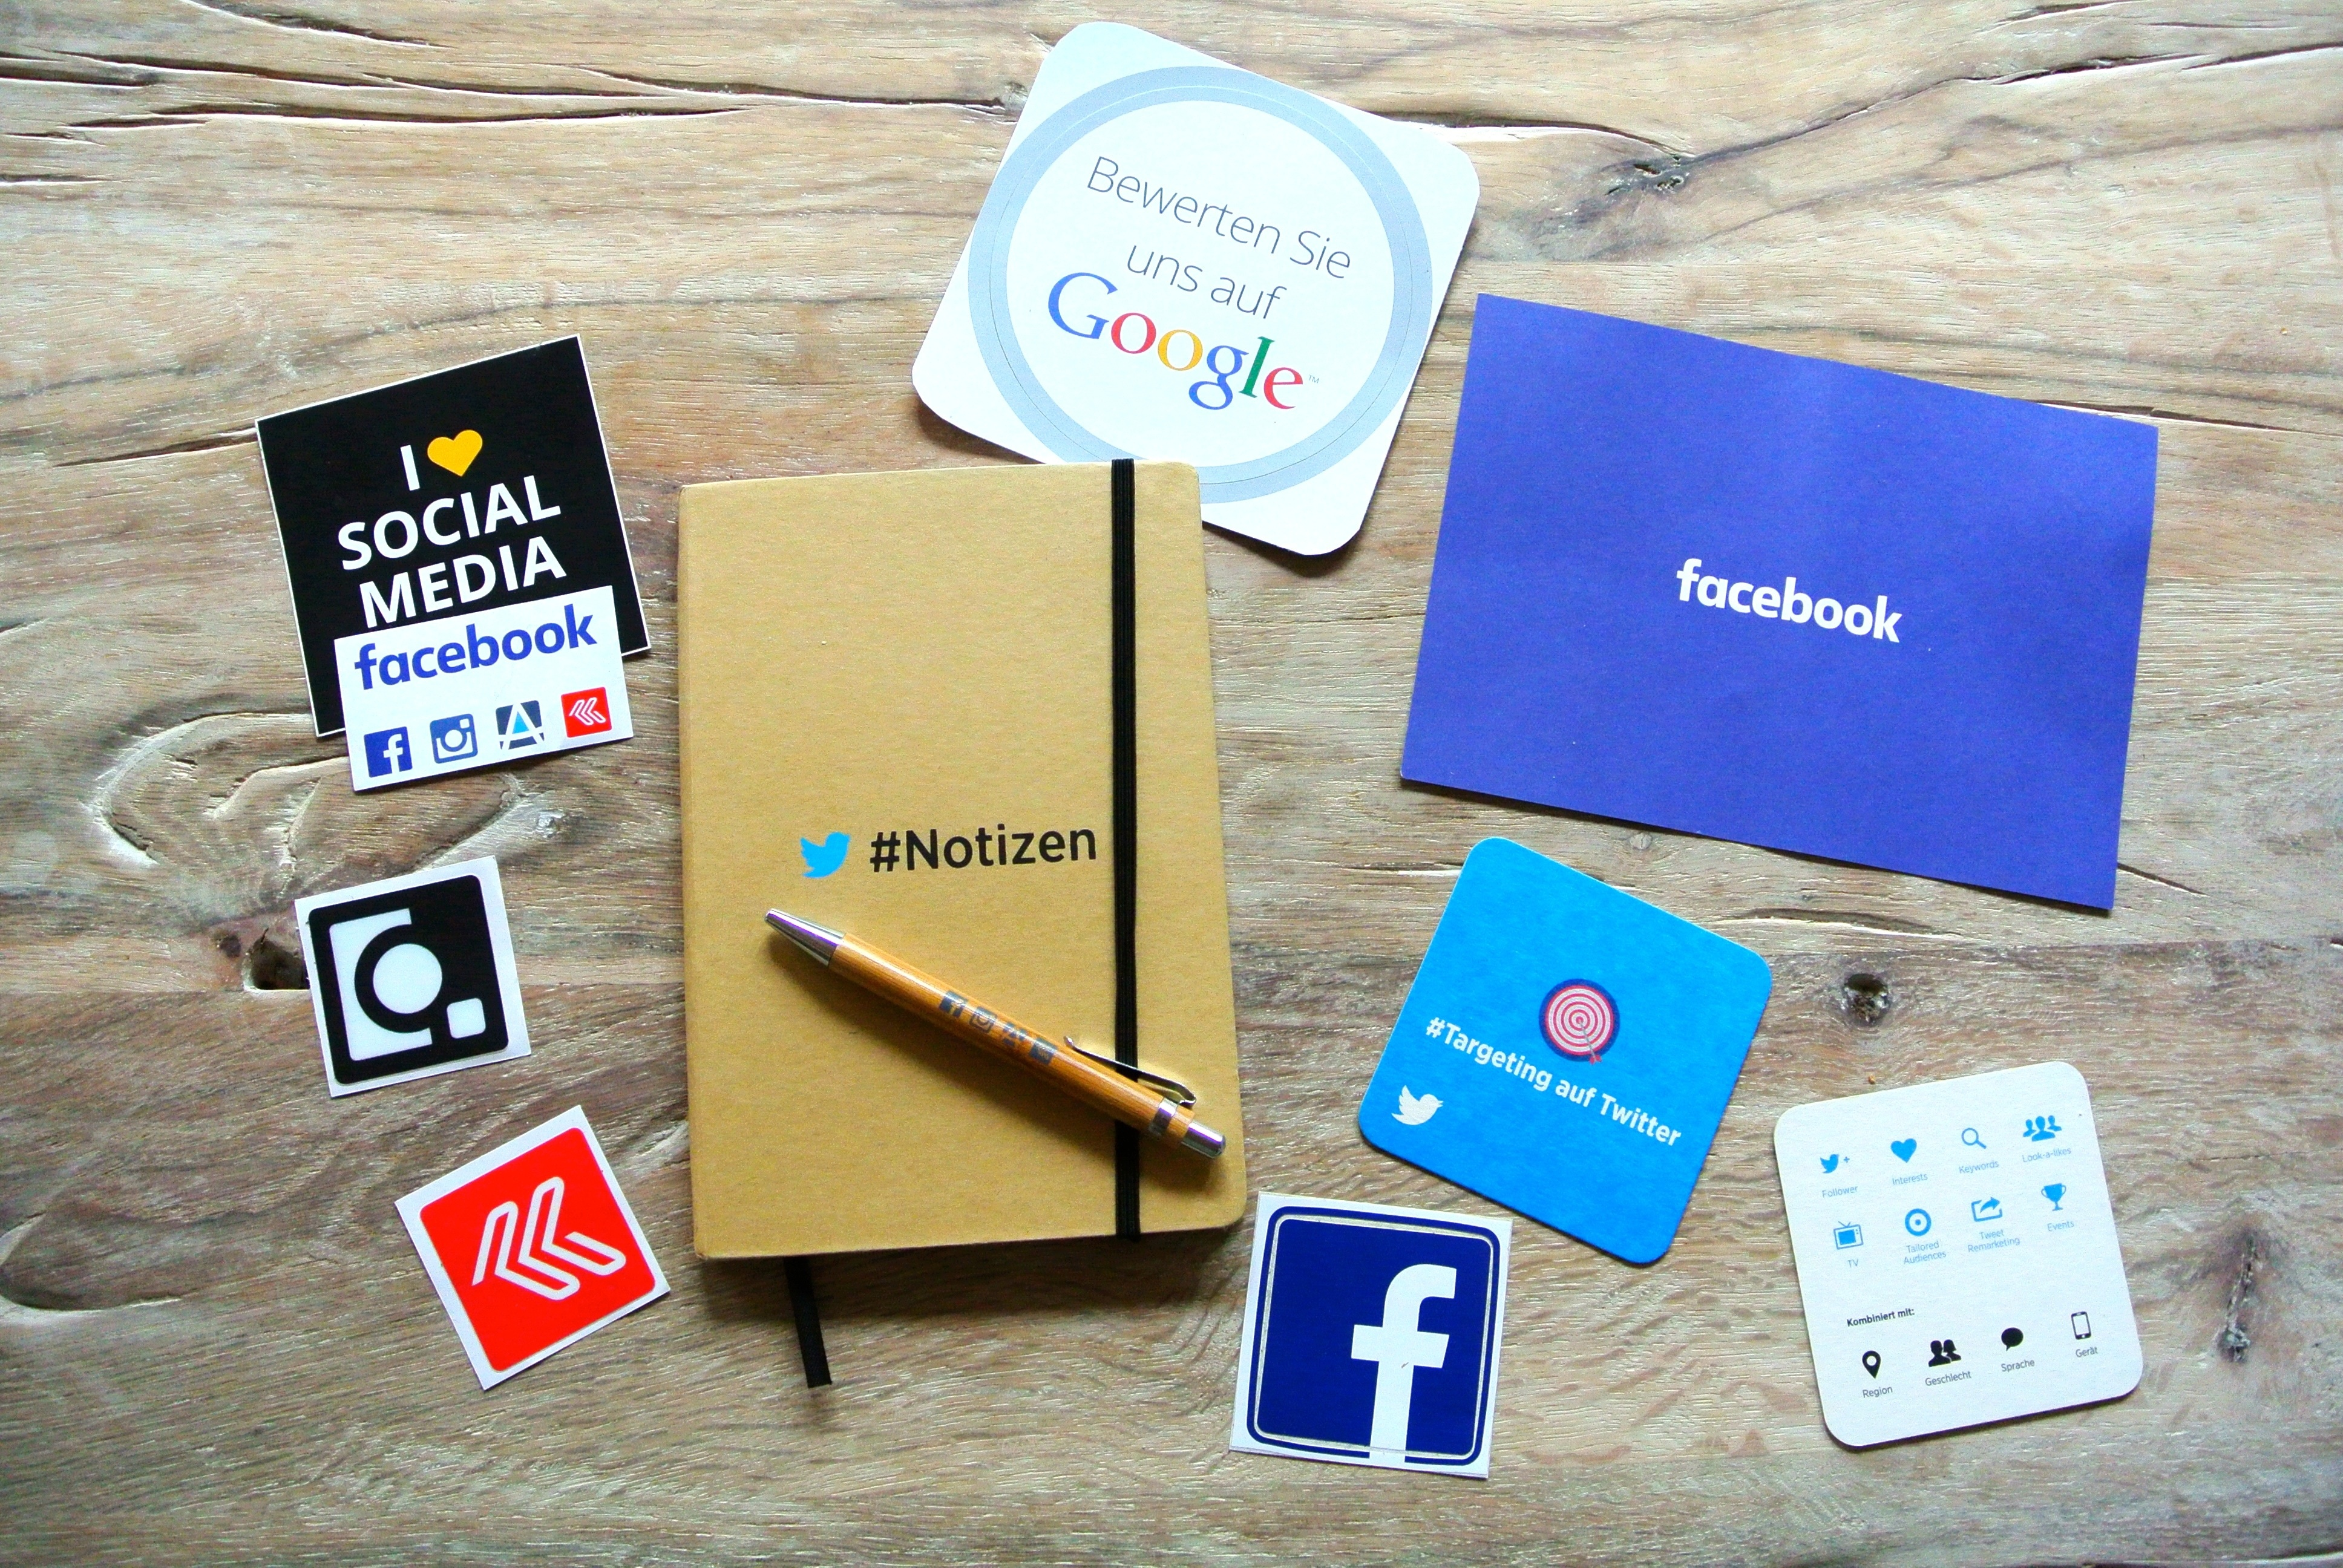 social media helps business growth